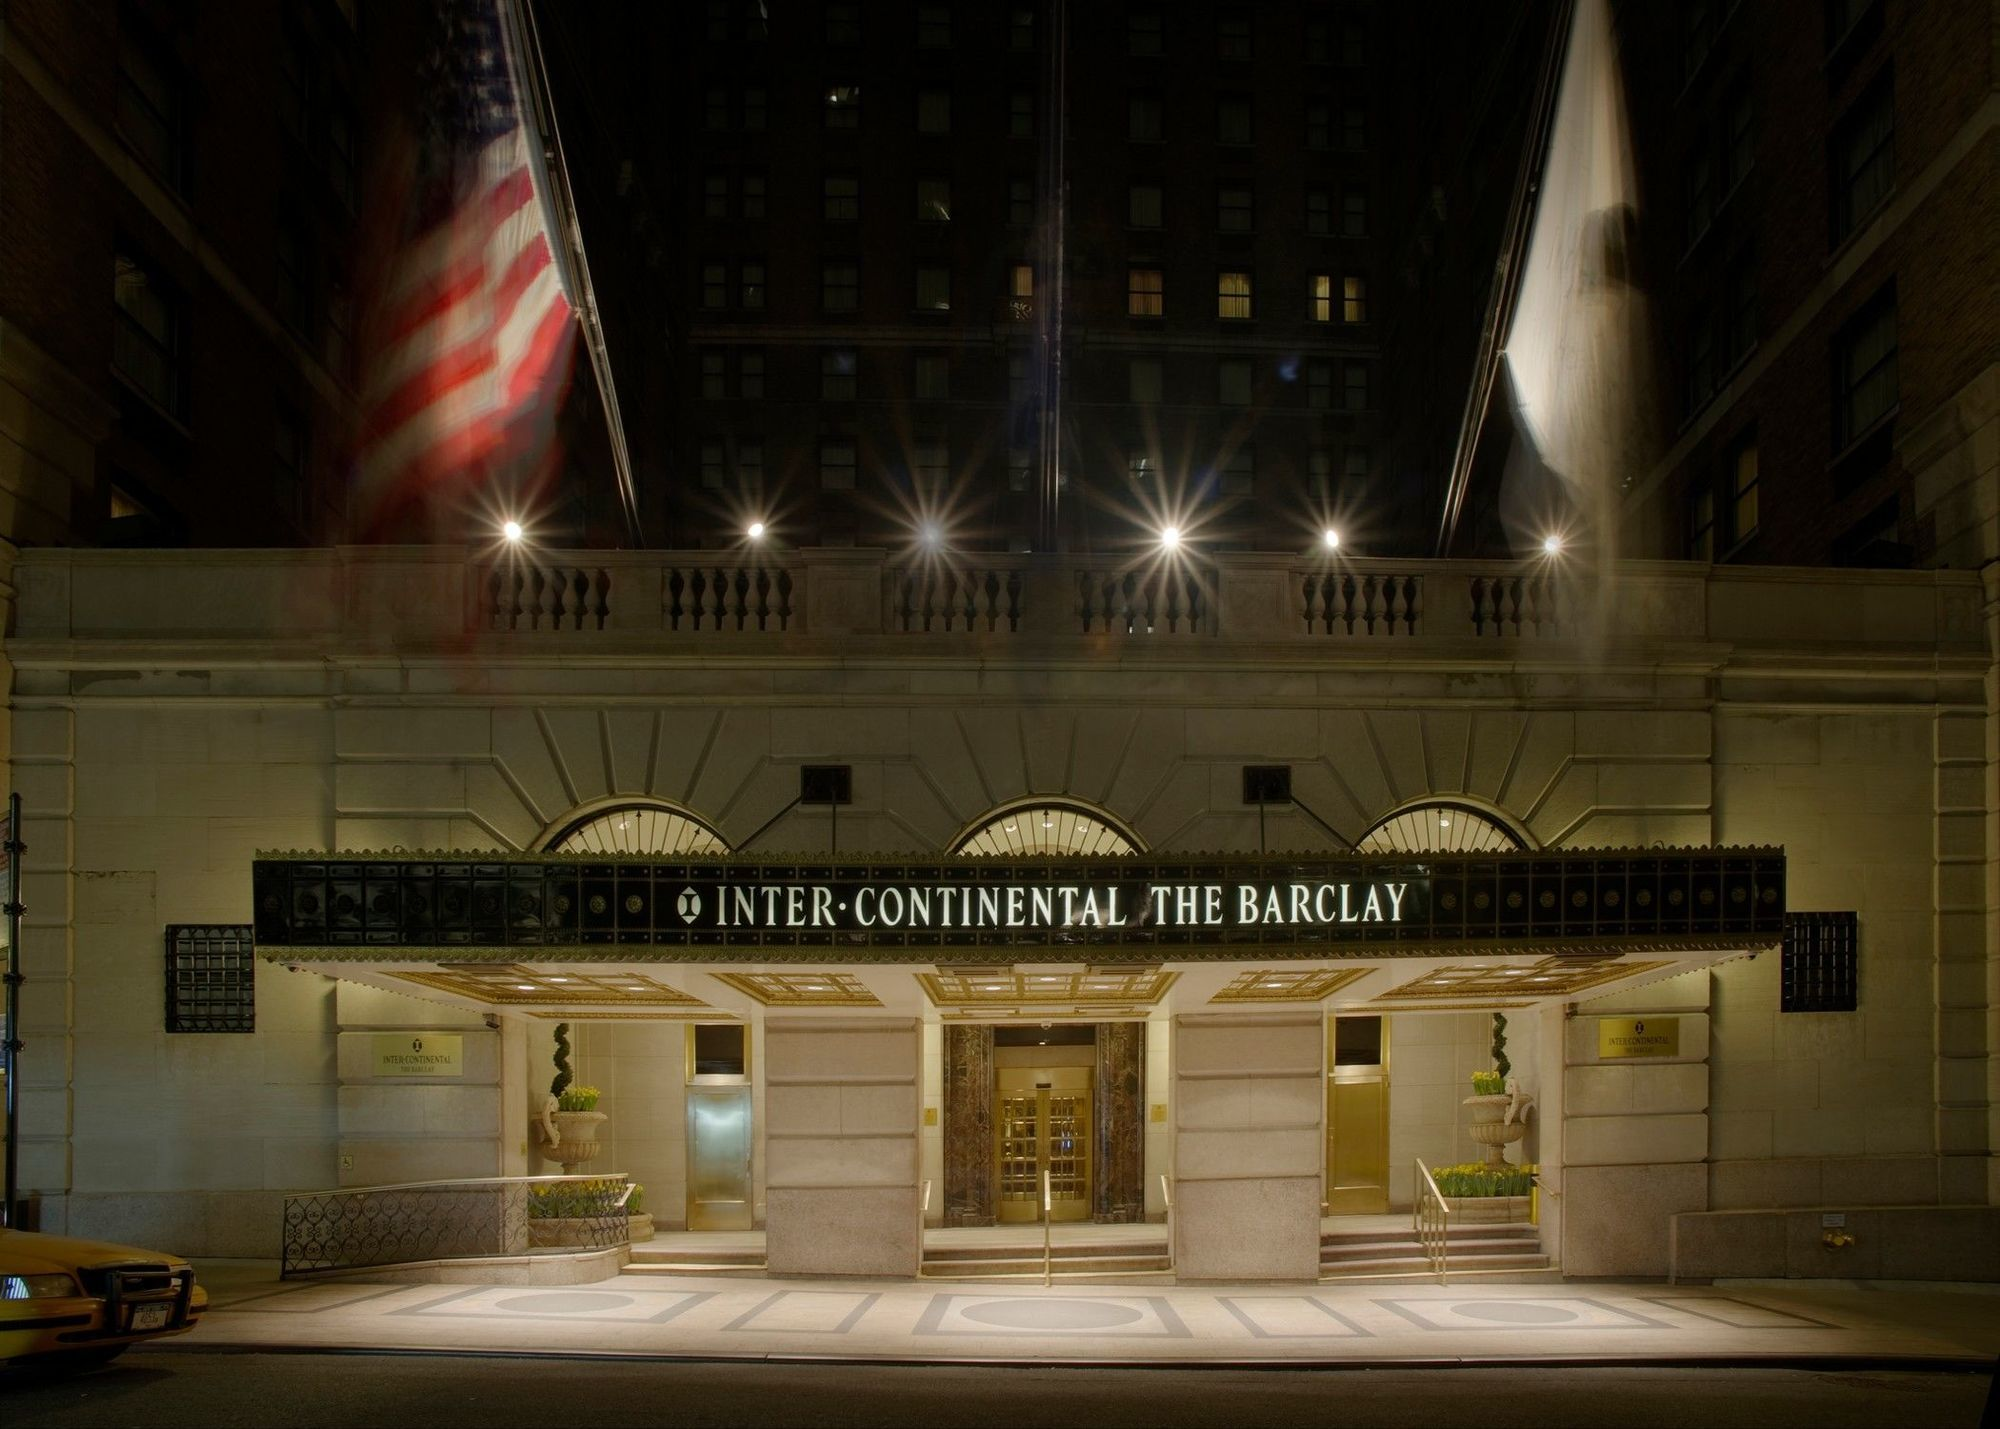 Hotel intercontinental the barclay new york city for The barclay